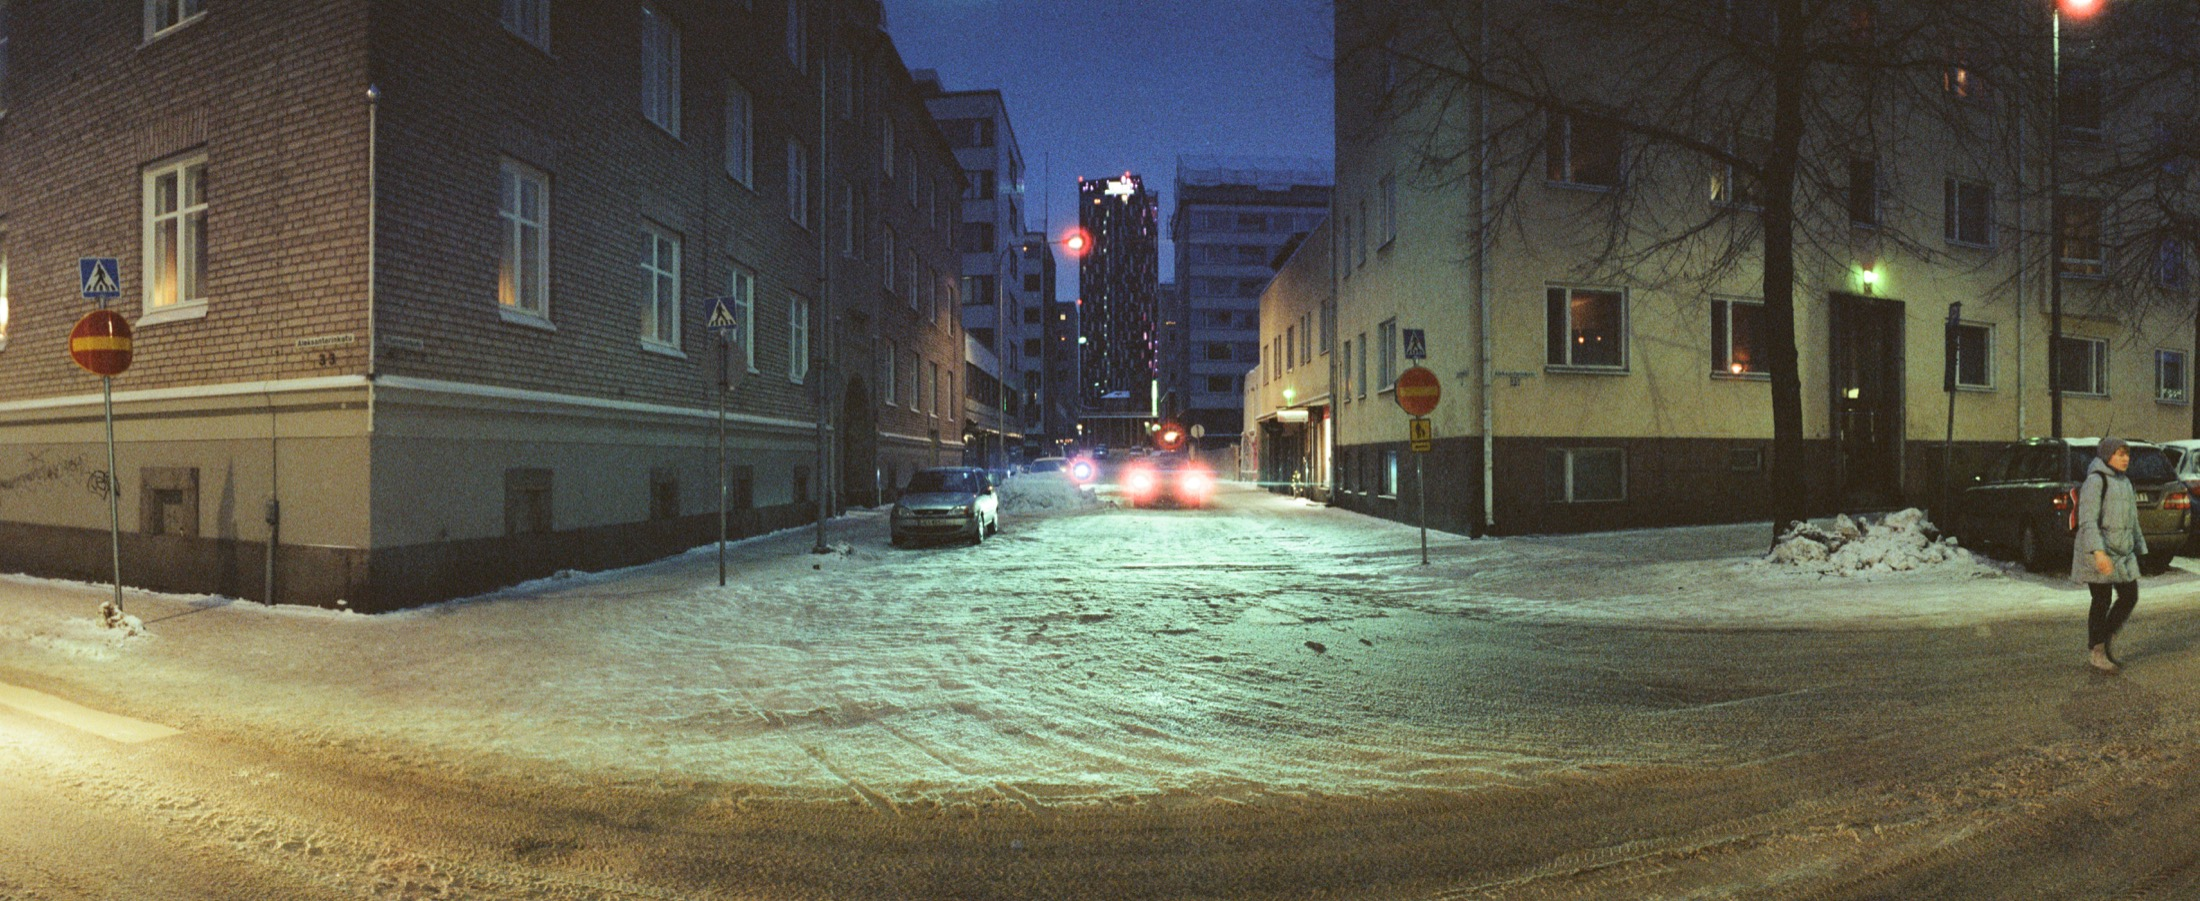 cameraville_horizon_202_panoramic_35mm_tampere_cineStill800_6.jpg